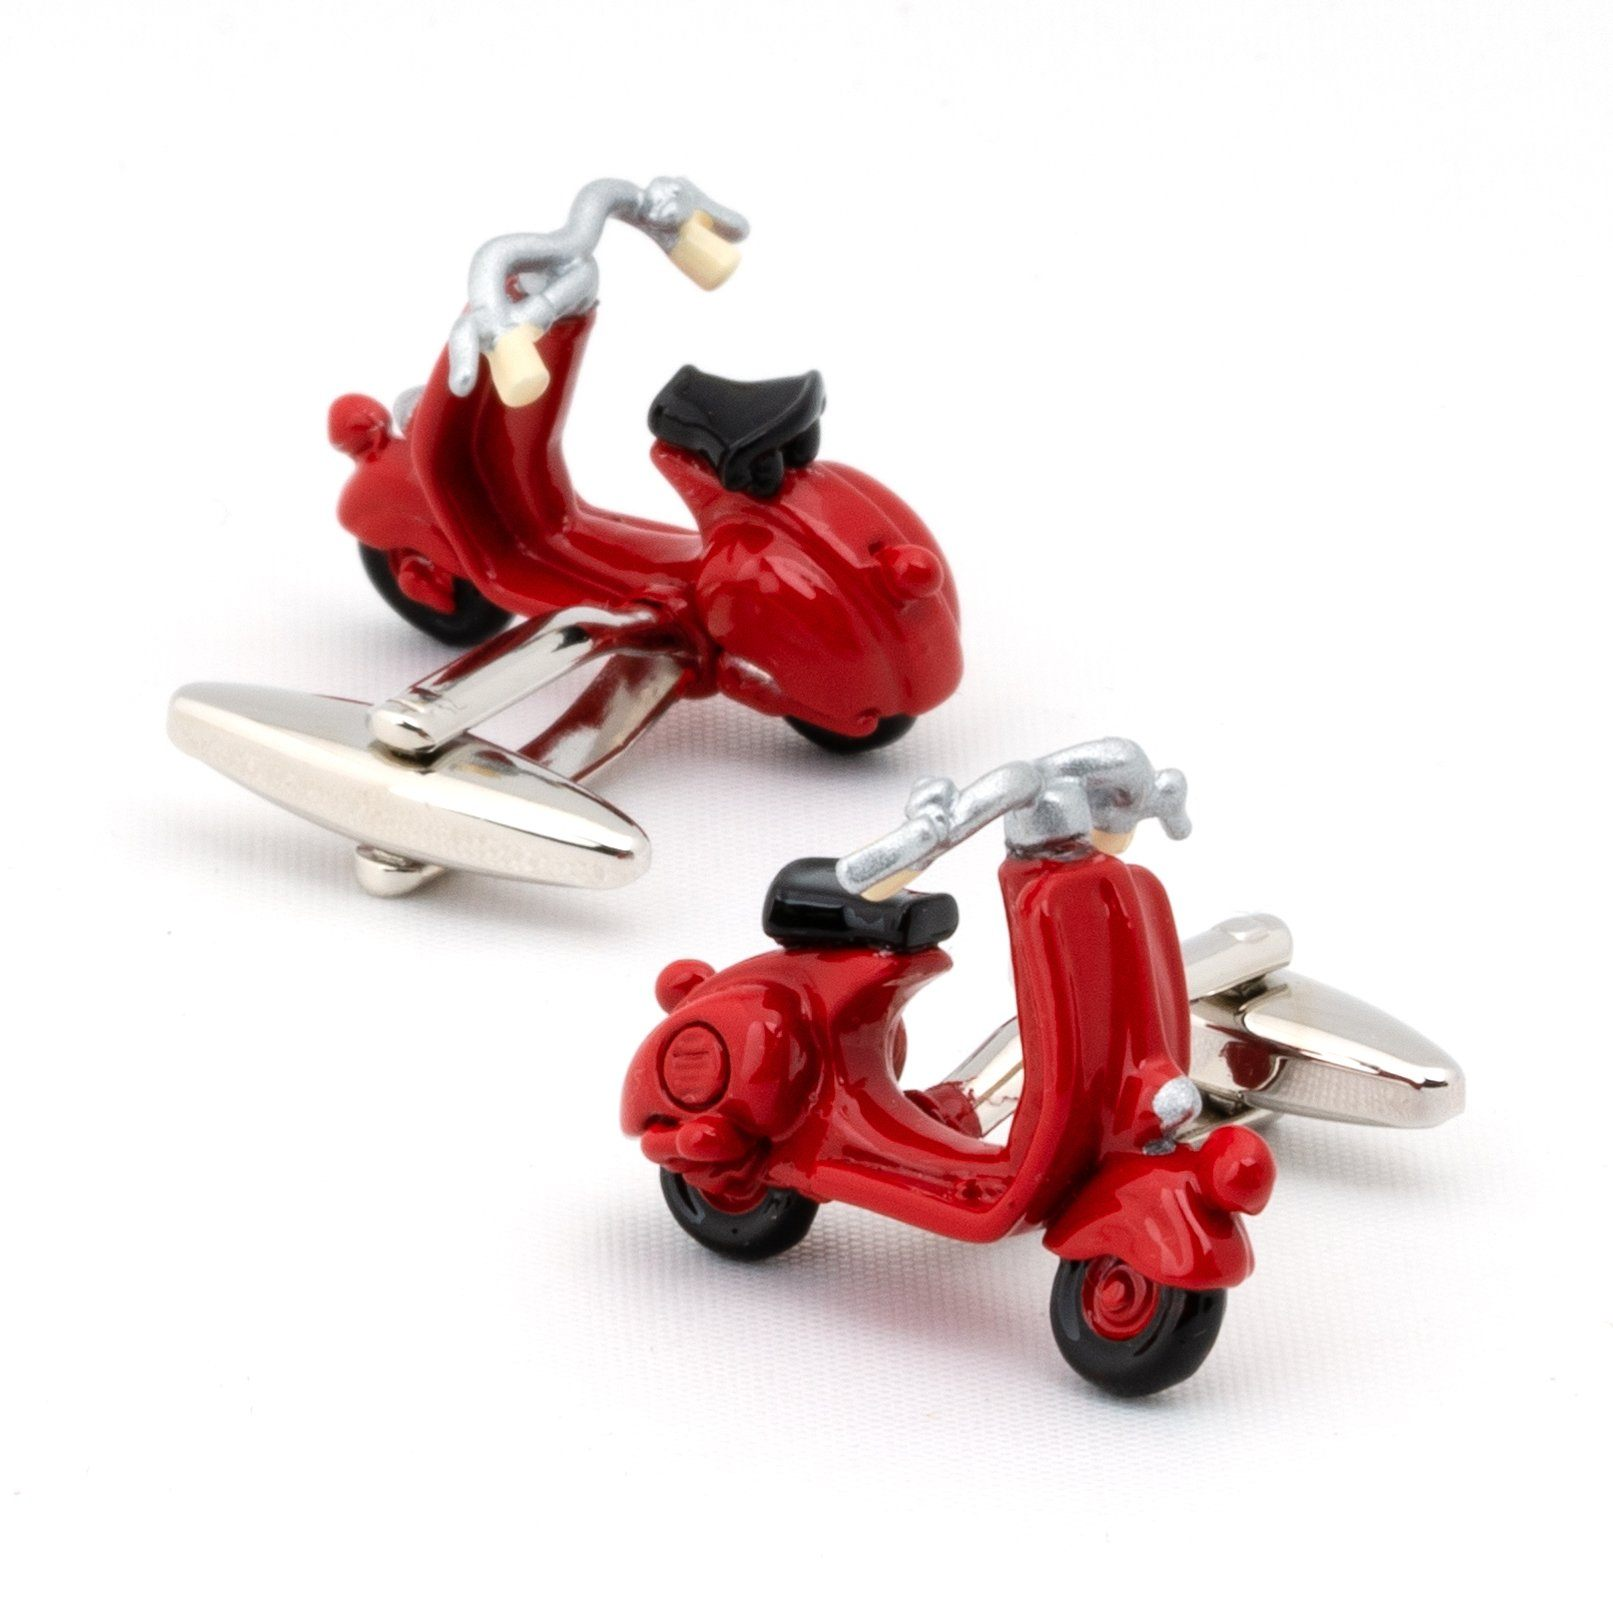 Red 3D Vespa Scooter Cufflinks Novelty Cufflinks Clinks Australia Red 3D Vespa Scooter Cufflinks